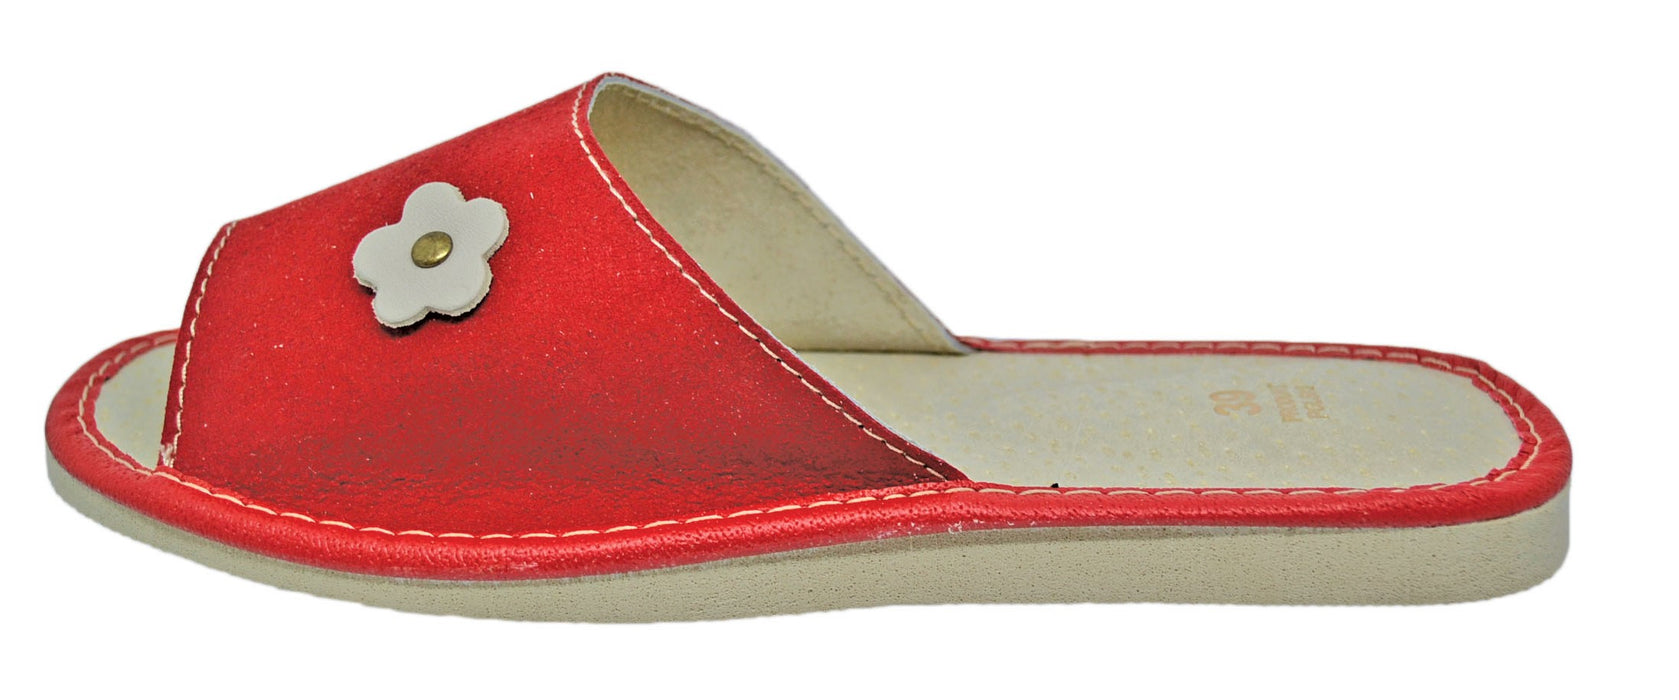 Scarlet Suede house womens red slippers - Reindeer Leather2